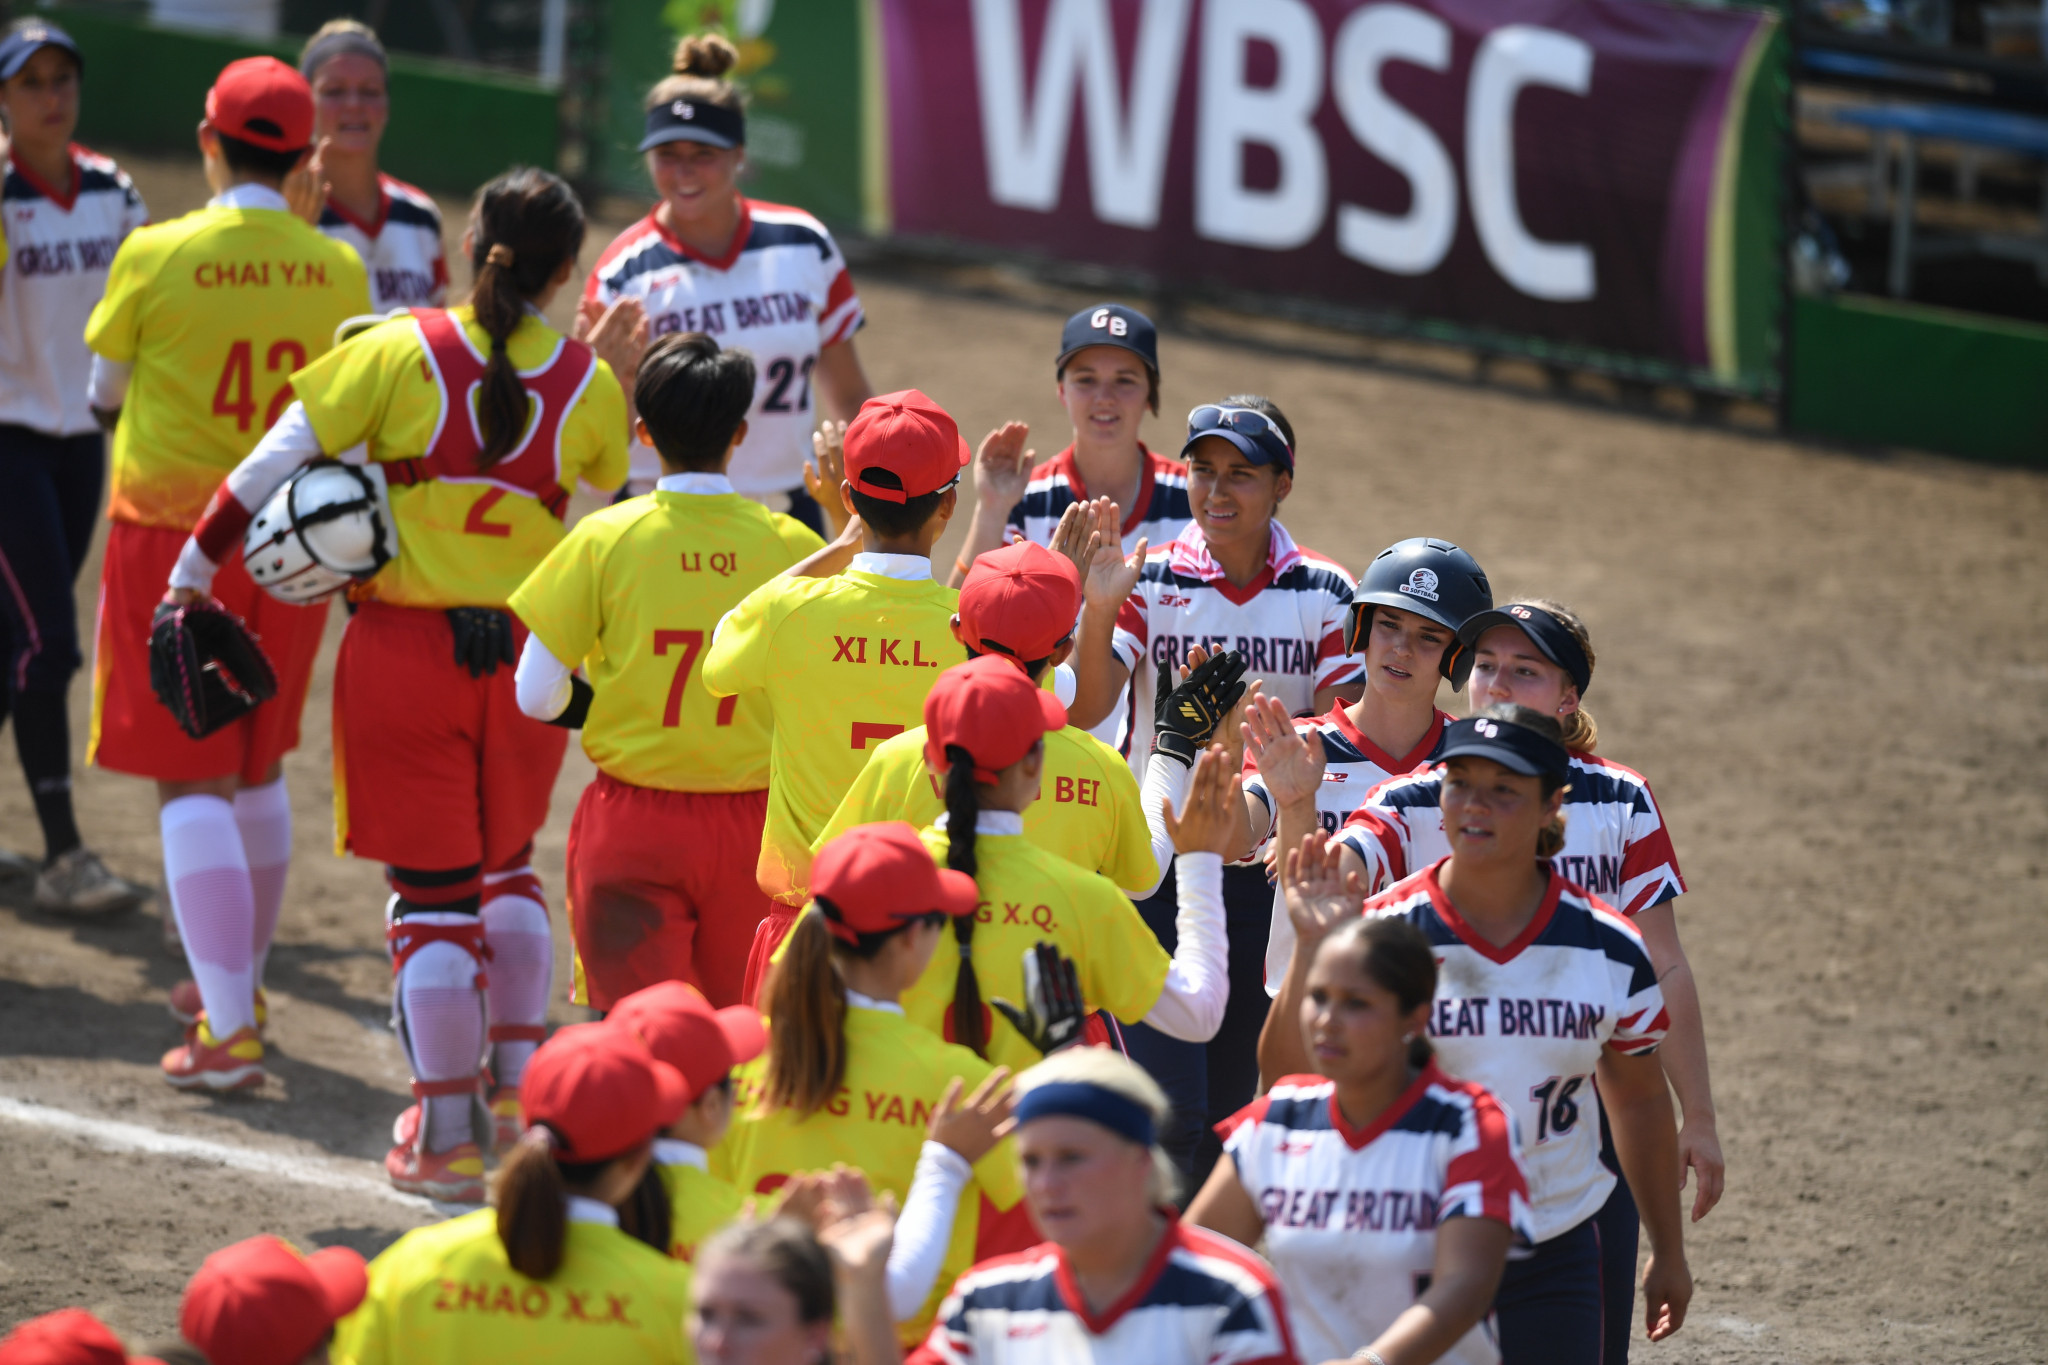 The WBSC has announced alterations to its competition calendar ©WBSC